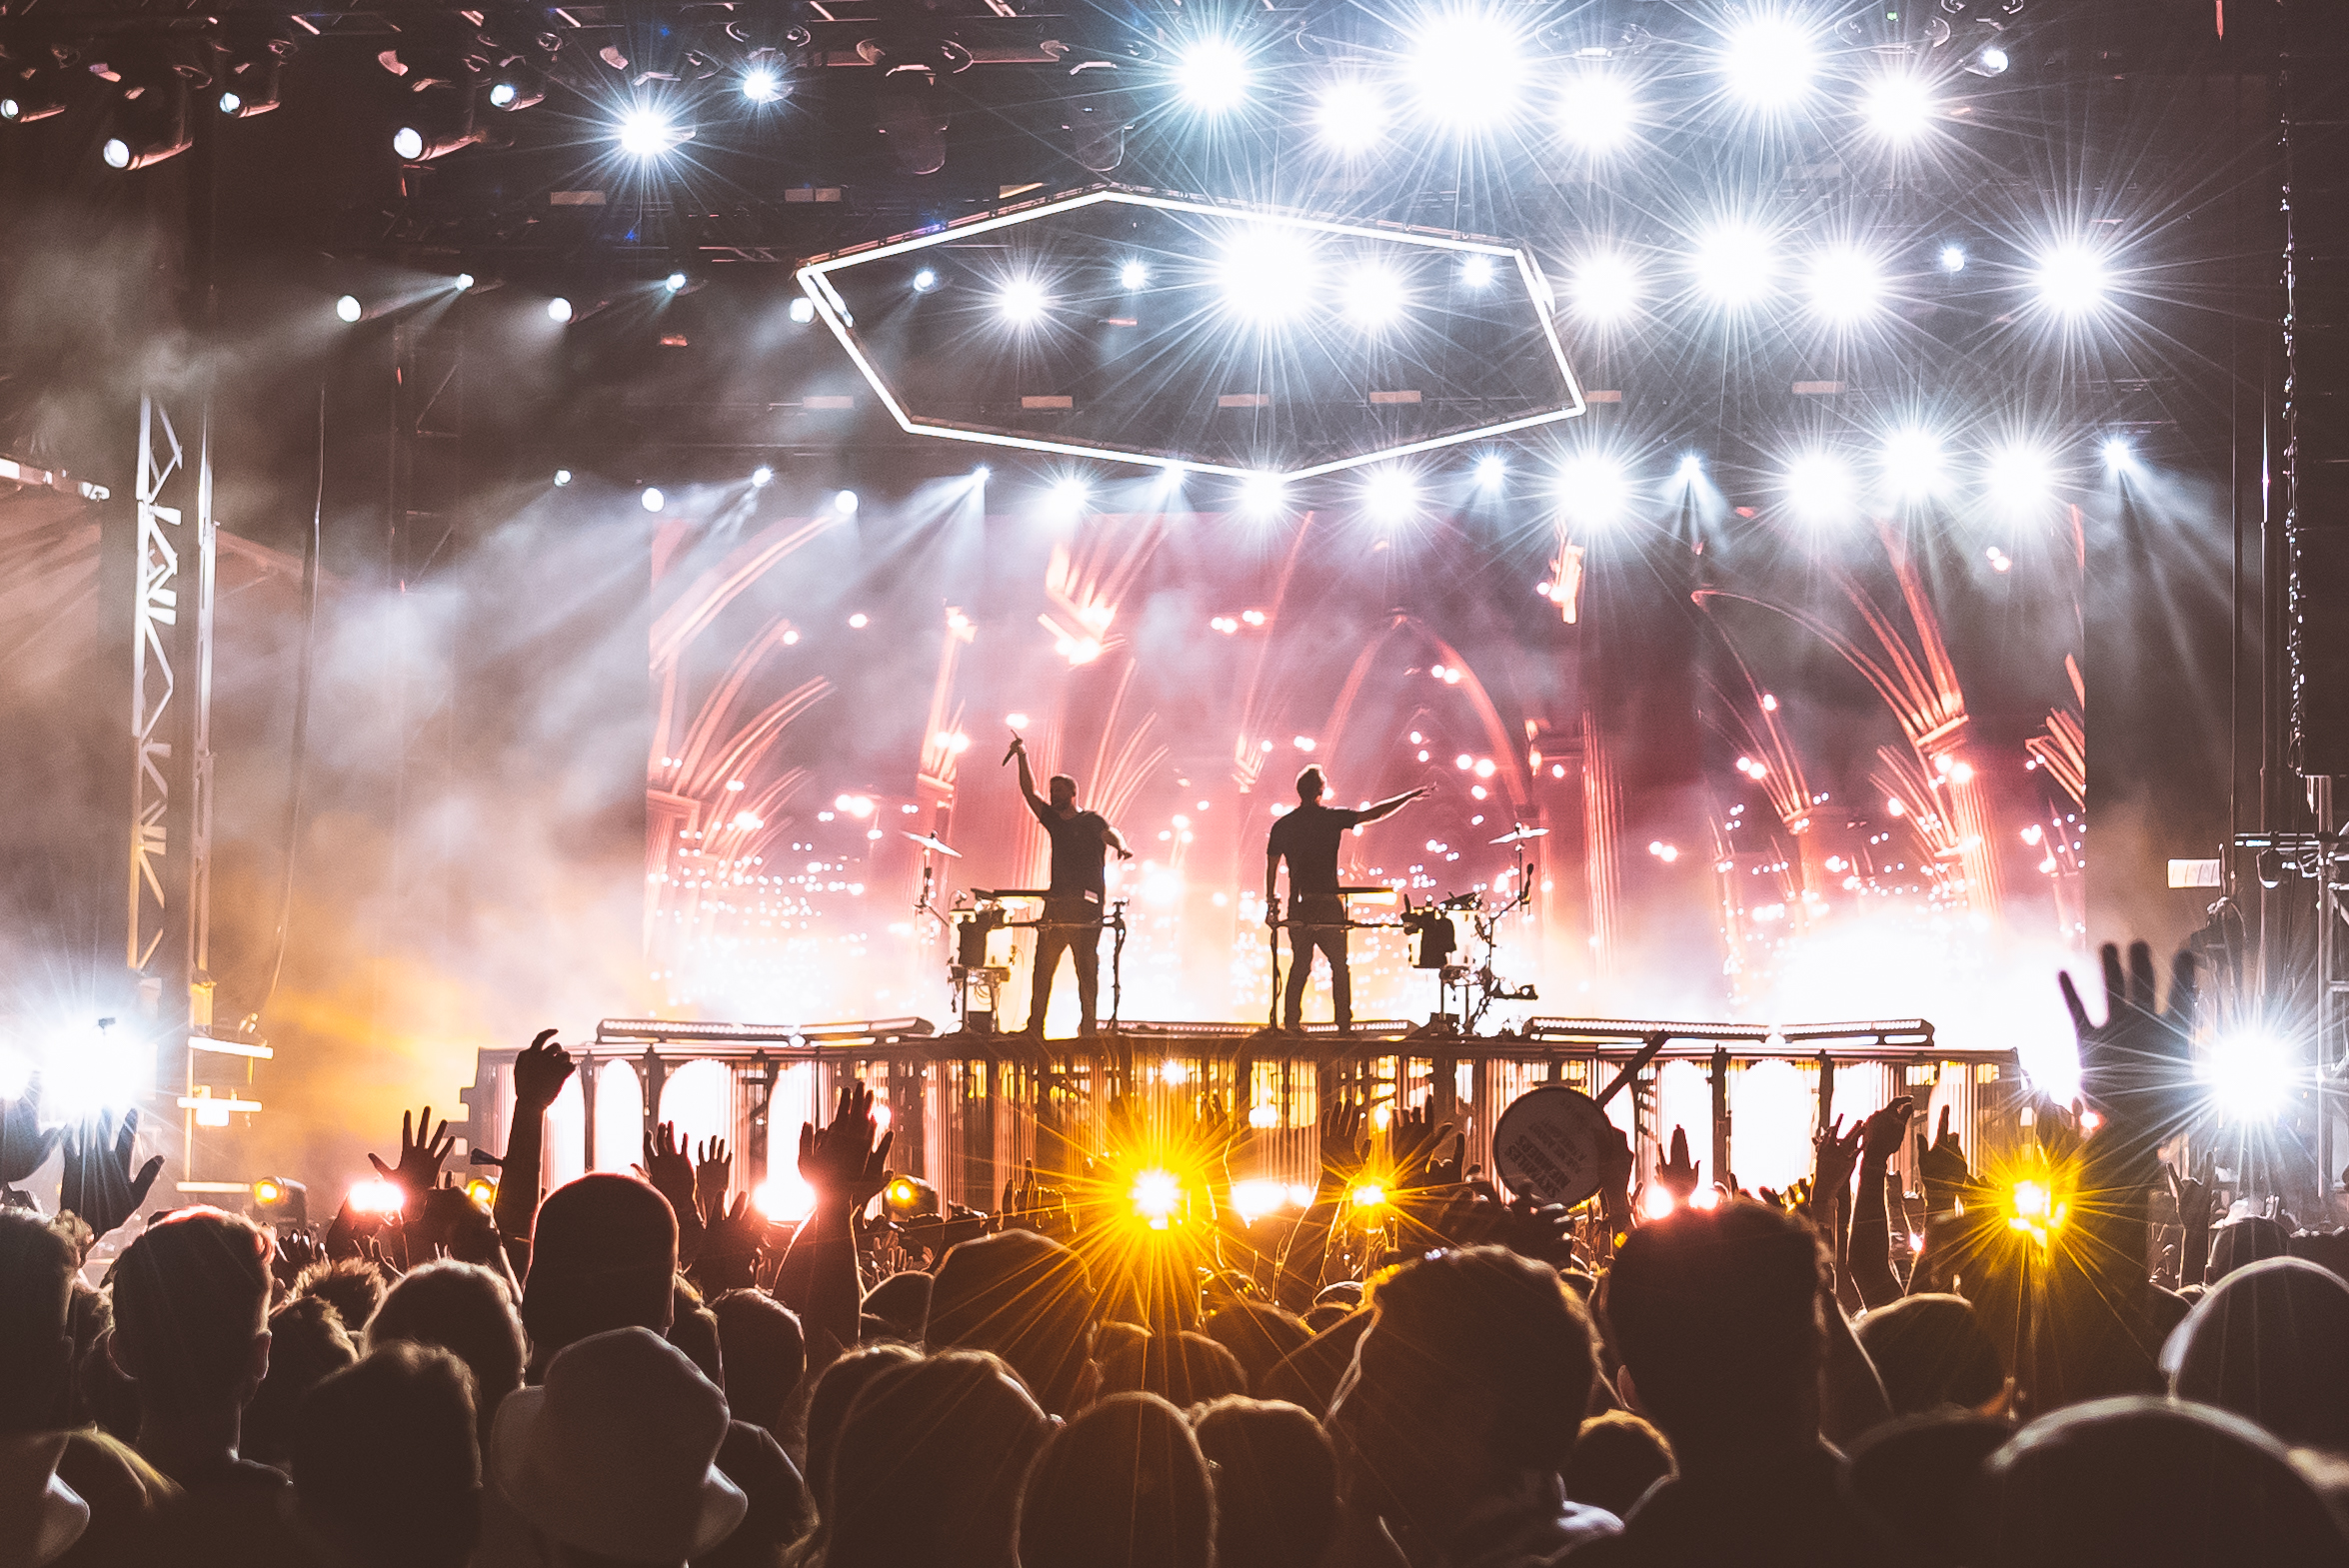 Electronic dance group ODESZA hypnotized the writer and the audience with their set that enthralled the crowd for over an hour.